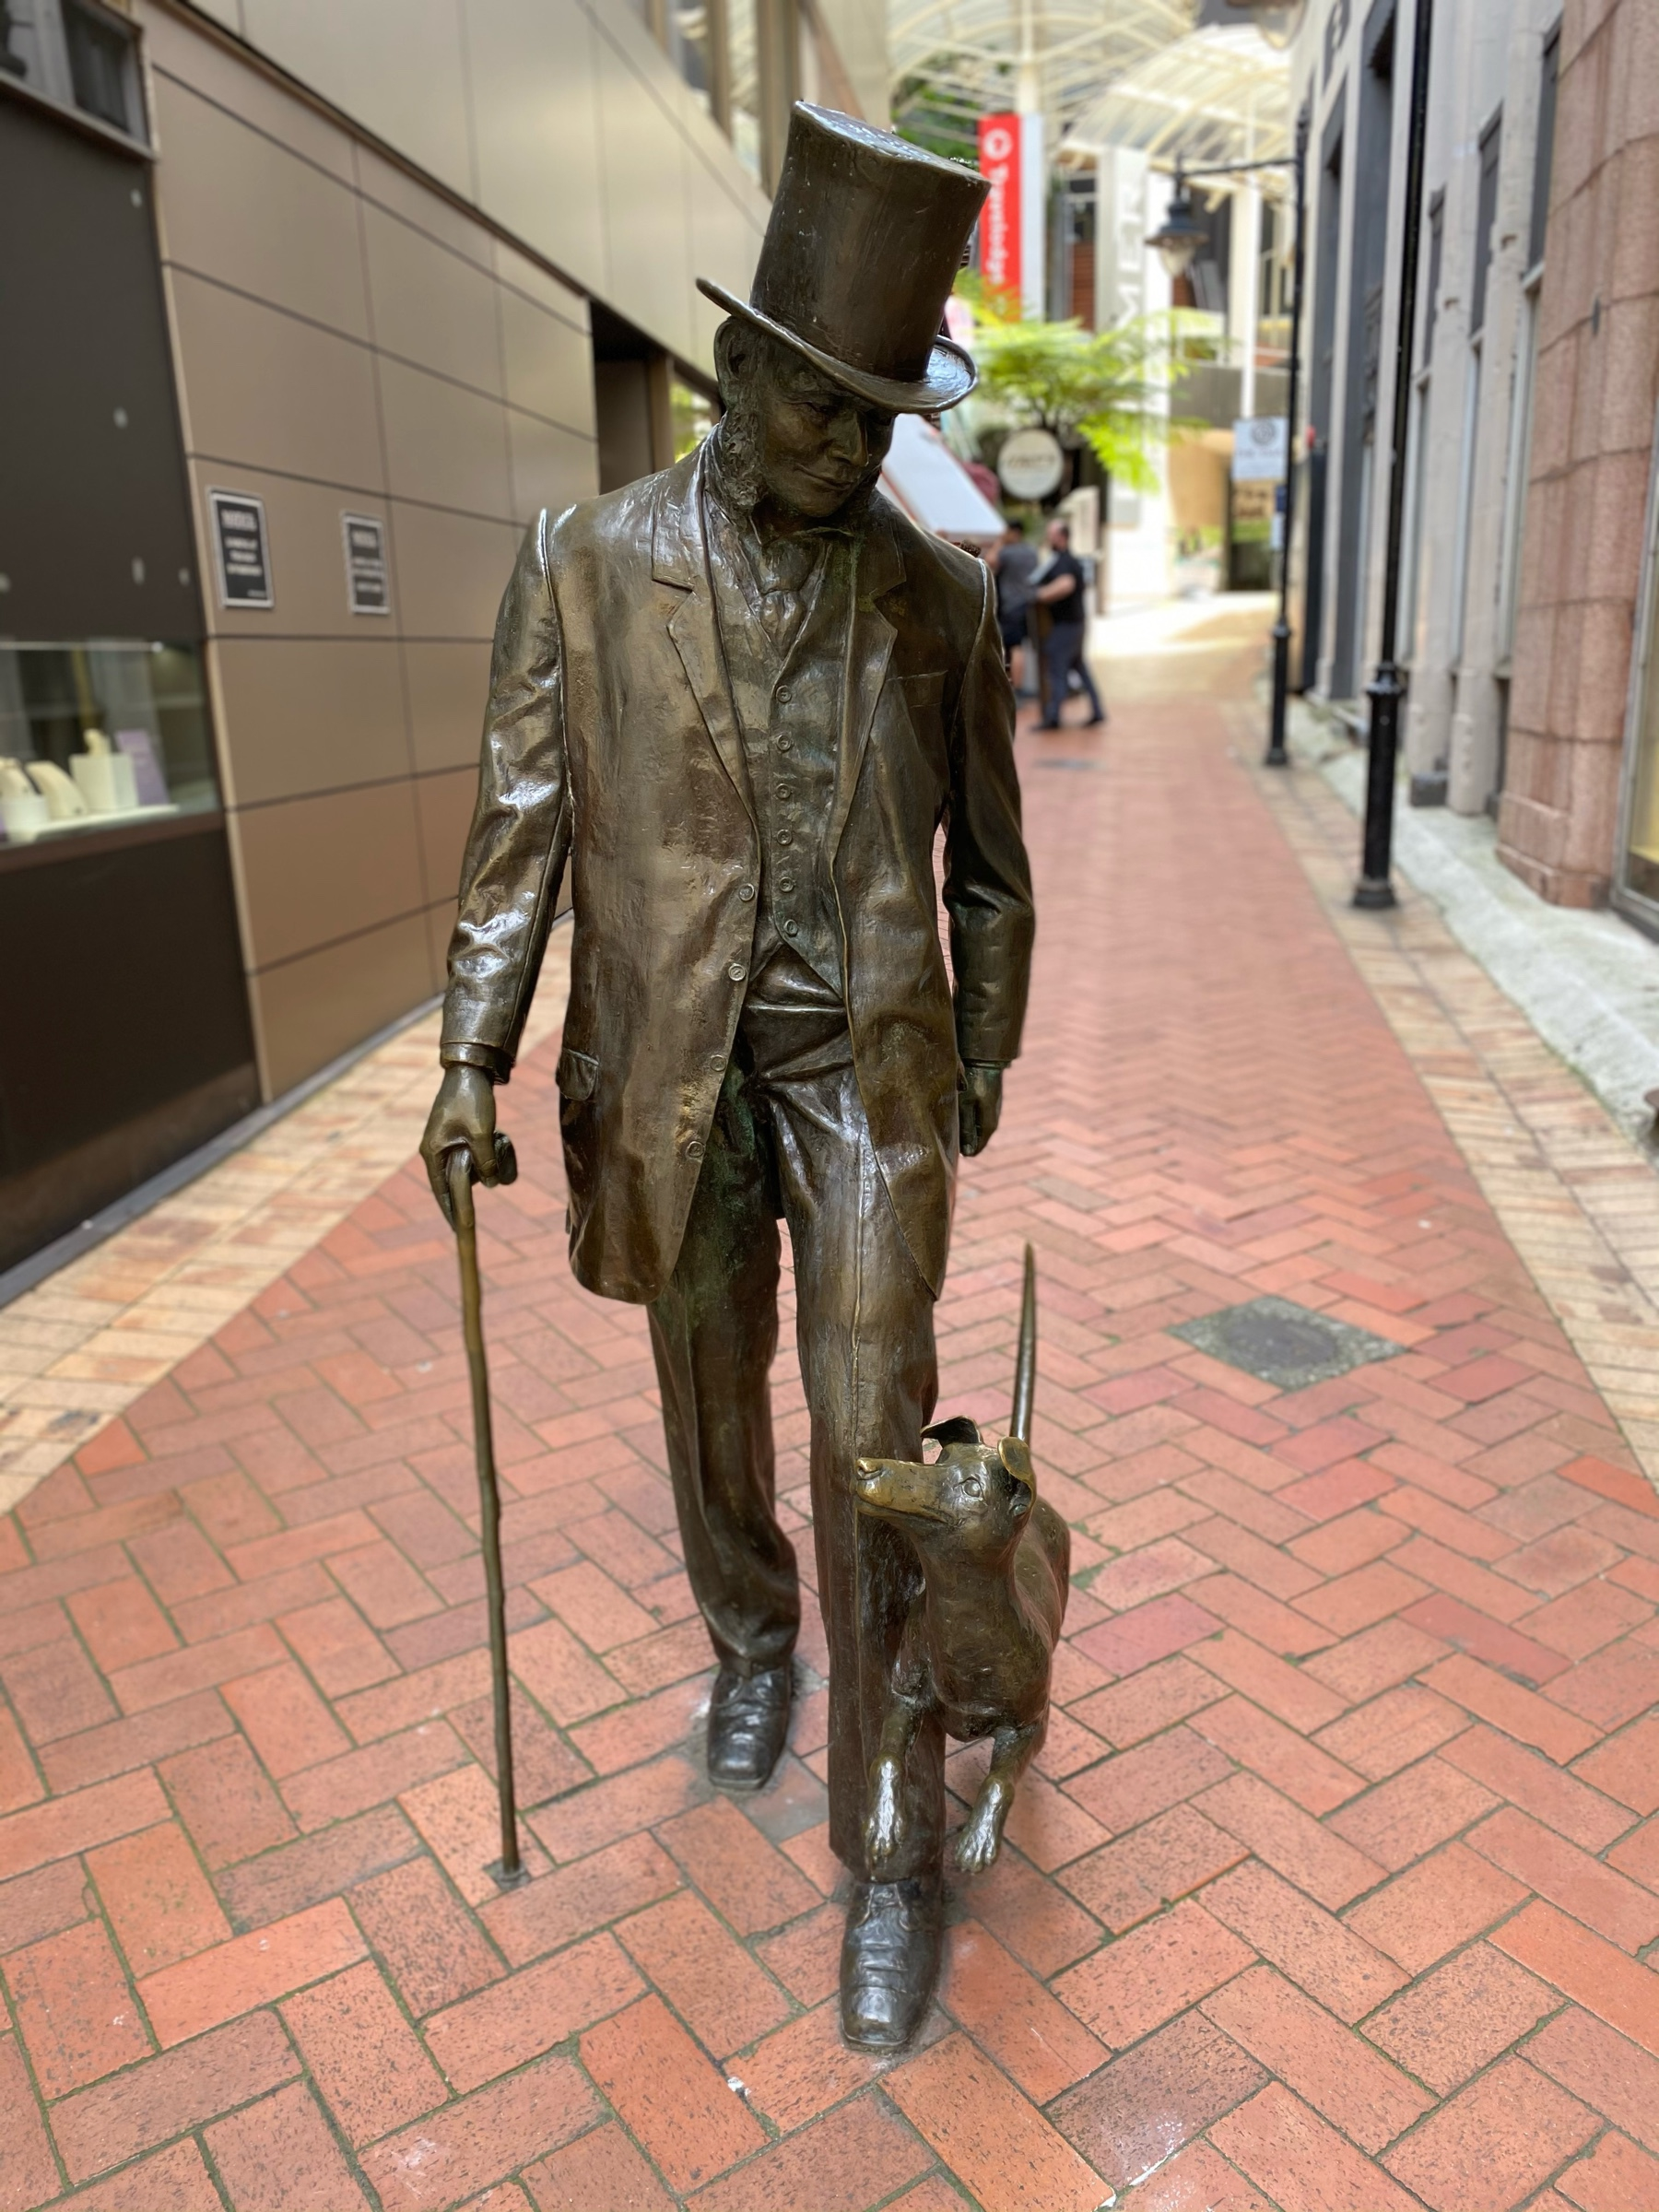 Statue of a man in a top hat with a small dog by his foot.